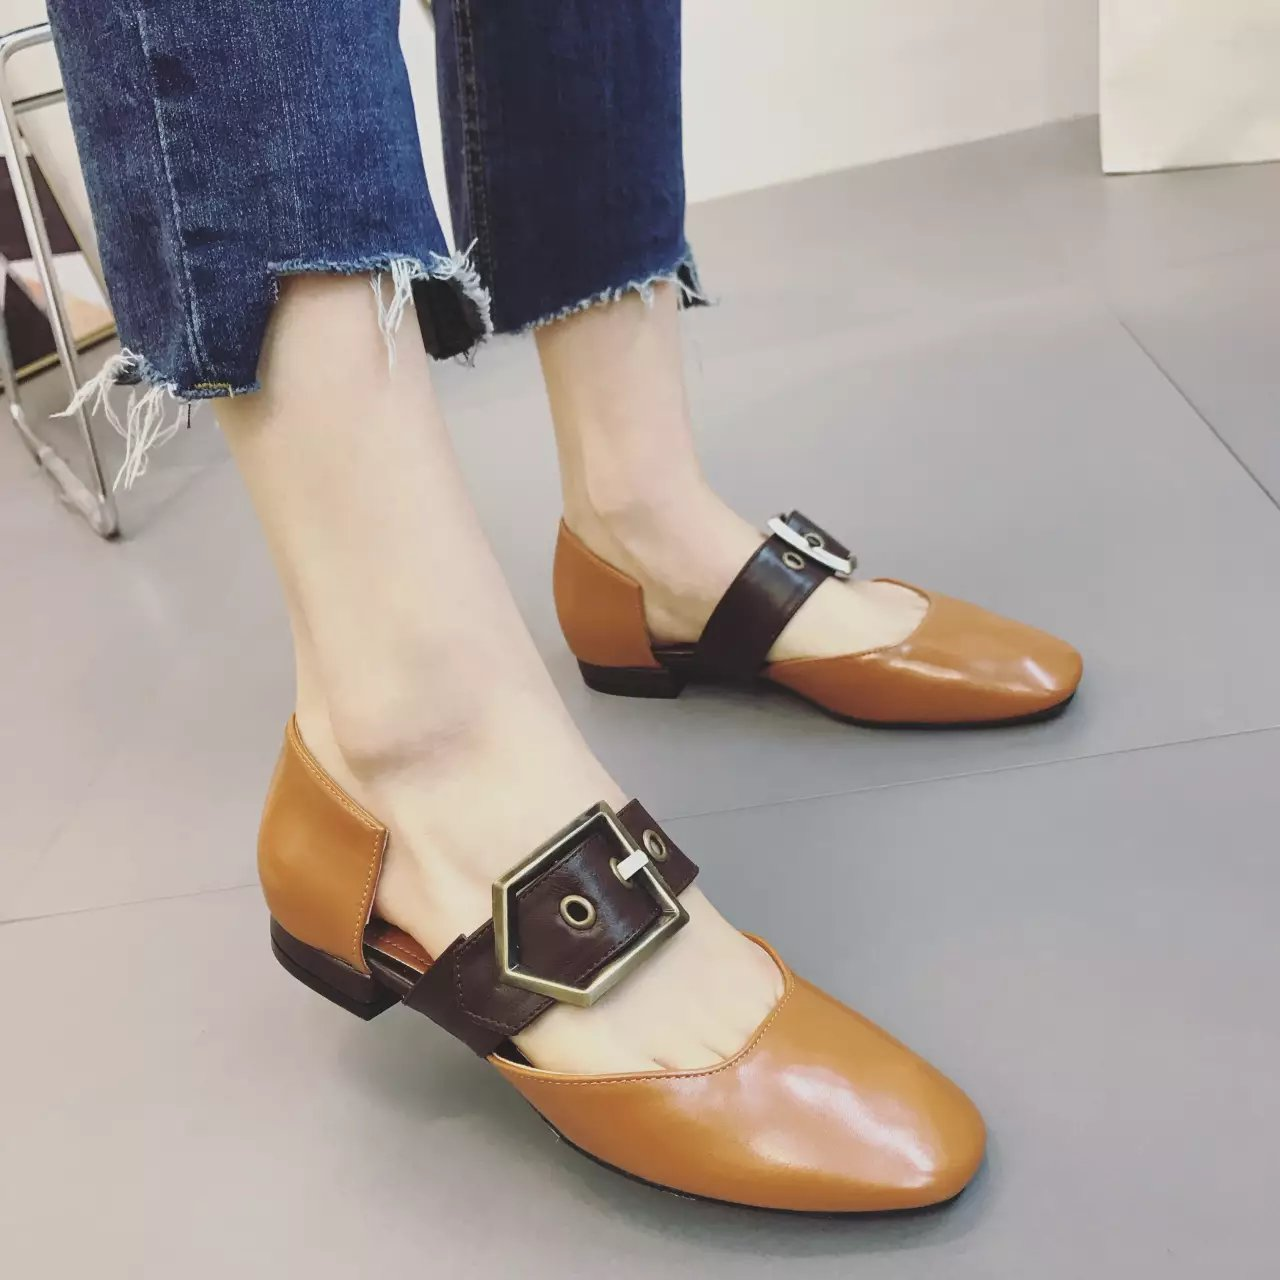 ФОТО 2017 New Spring And Autumn Square Toe Women Flats  Belt Buckle Decorate Mary Janes Shallow Mouth Flat Shoes Beige Brown